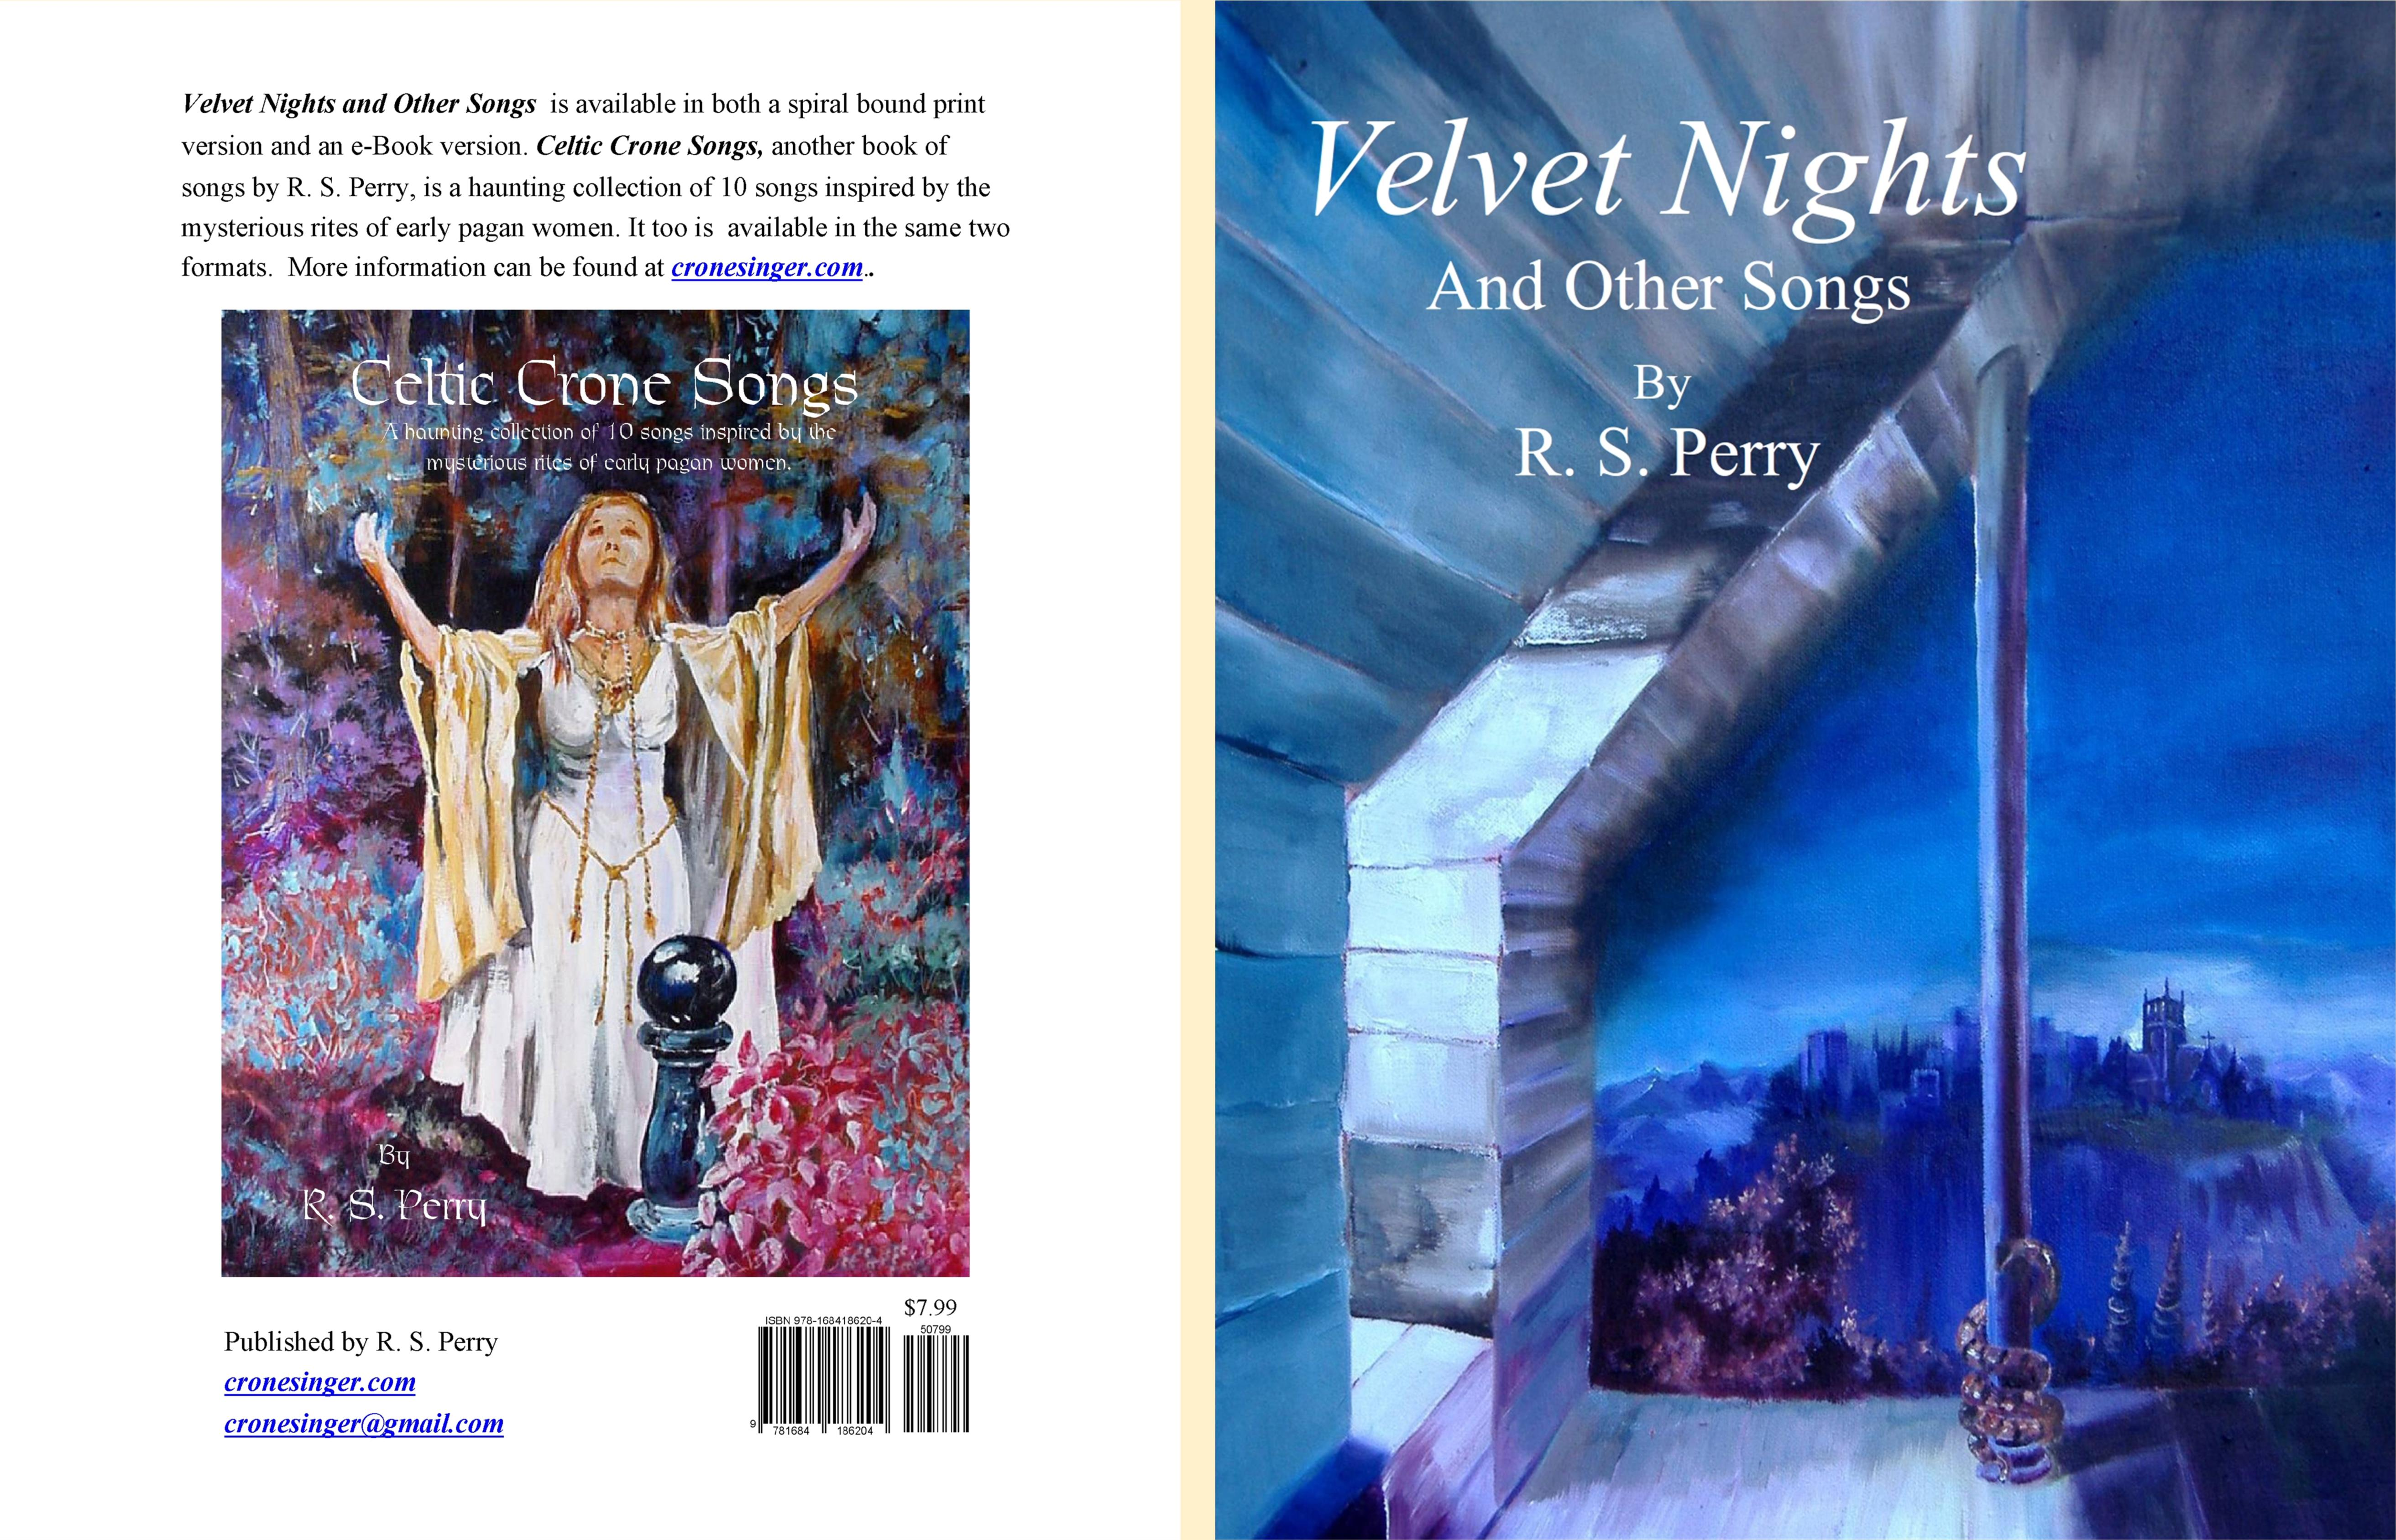 Velvet Nights and Other Songs cover image